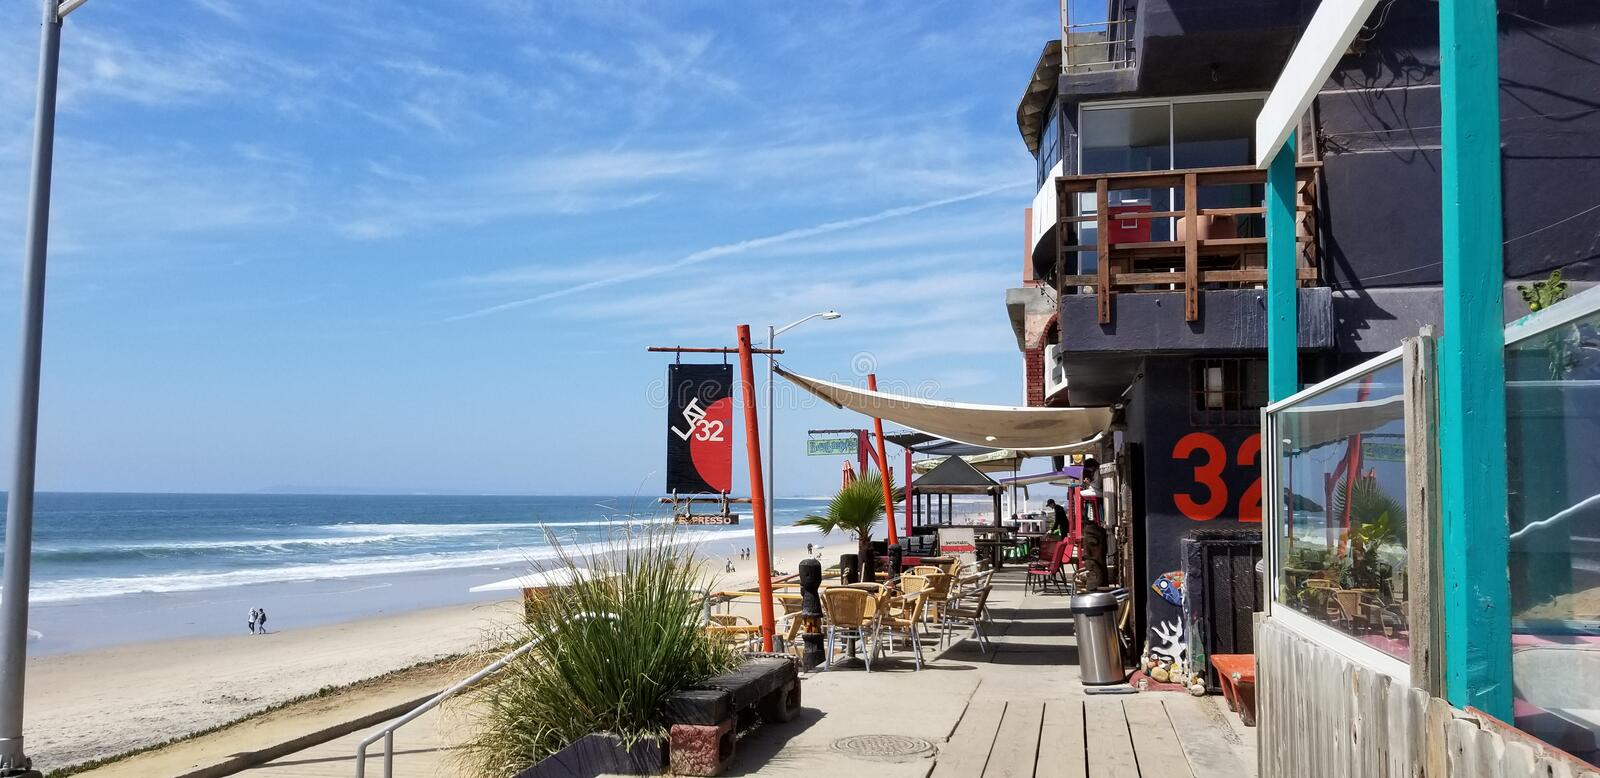 Tijuana, BC, Mexico - April 25, 2018 - Famous Latitud 32 coffee shop at the beach area of Malecon de Playas de Tijuana, on a clear stock photos